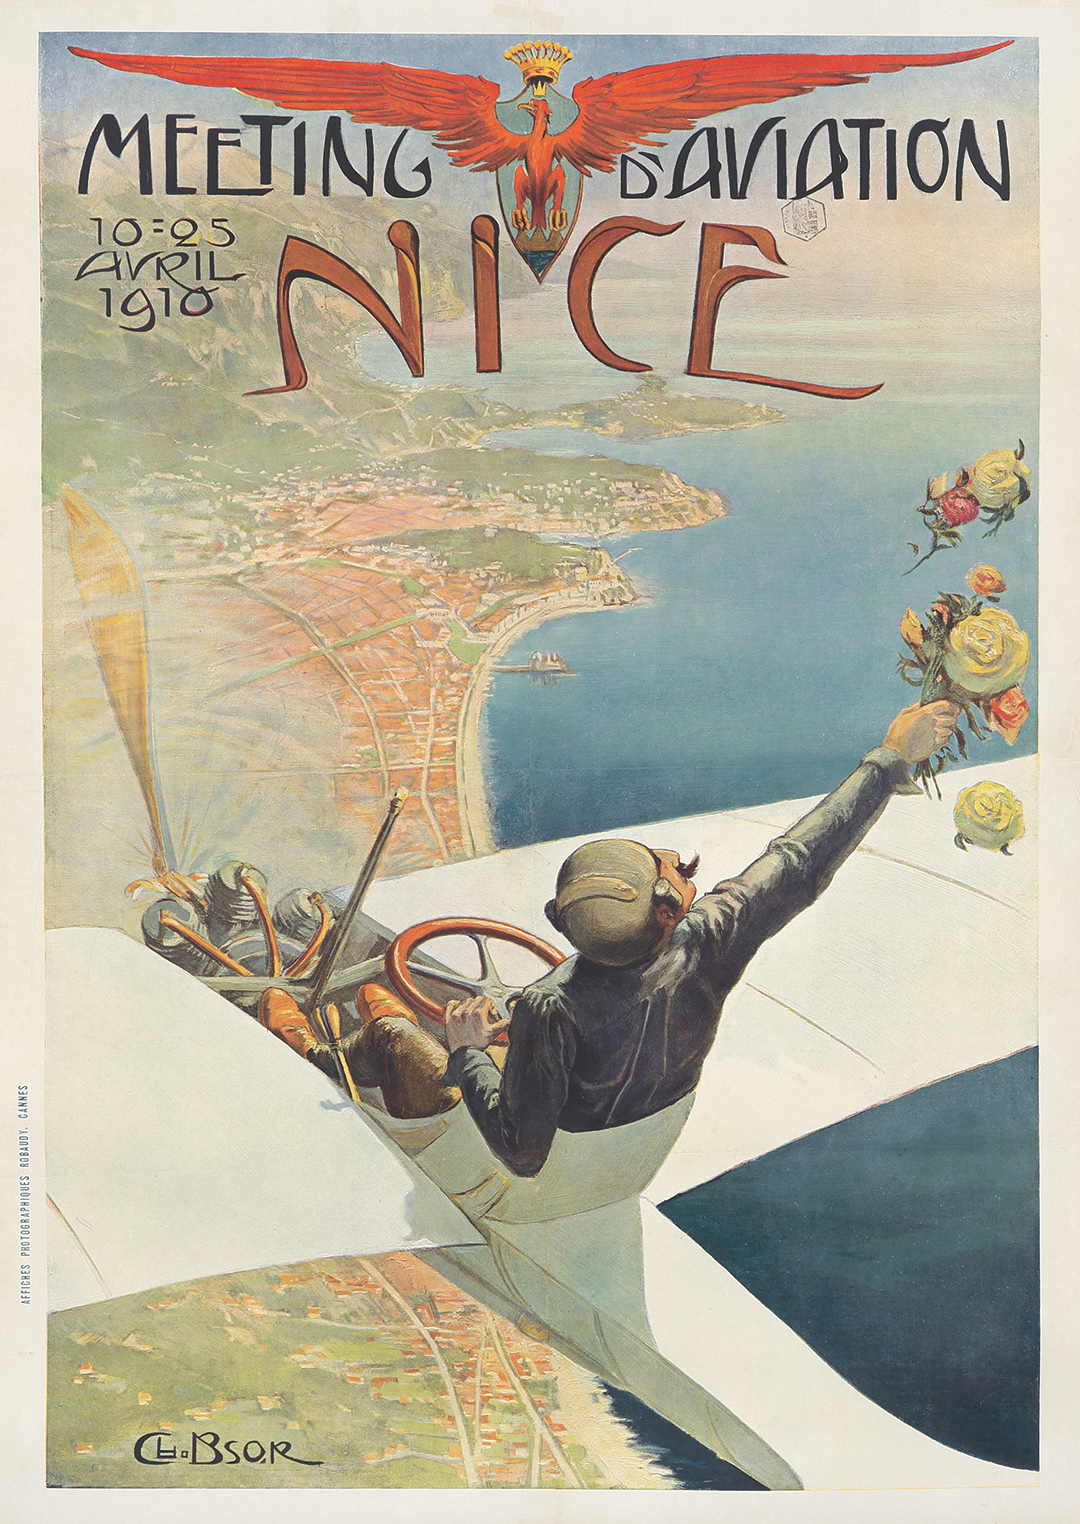 79. Brossé's 1910 Meeting D'Aviation / Nice. ($16,800)